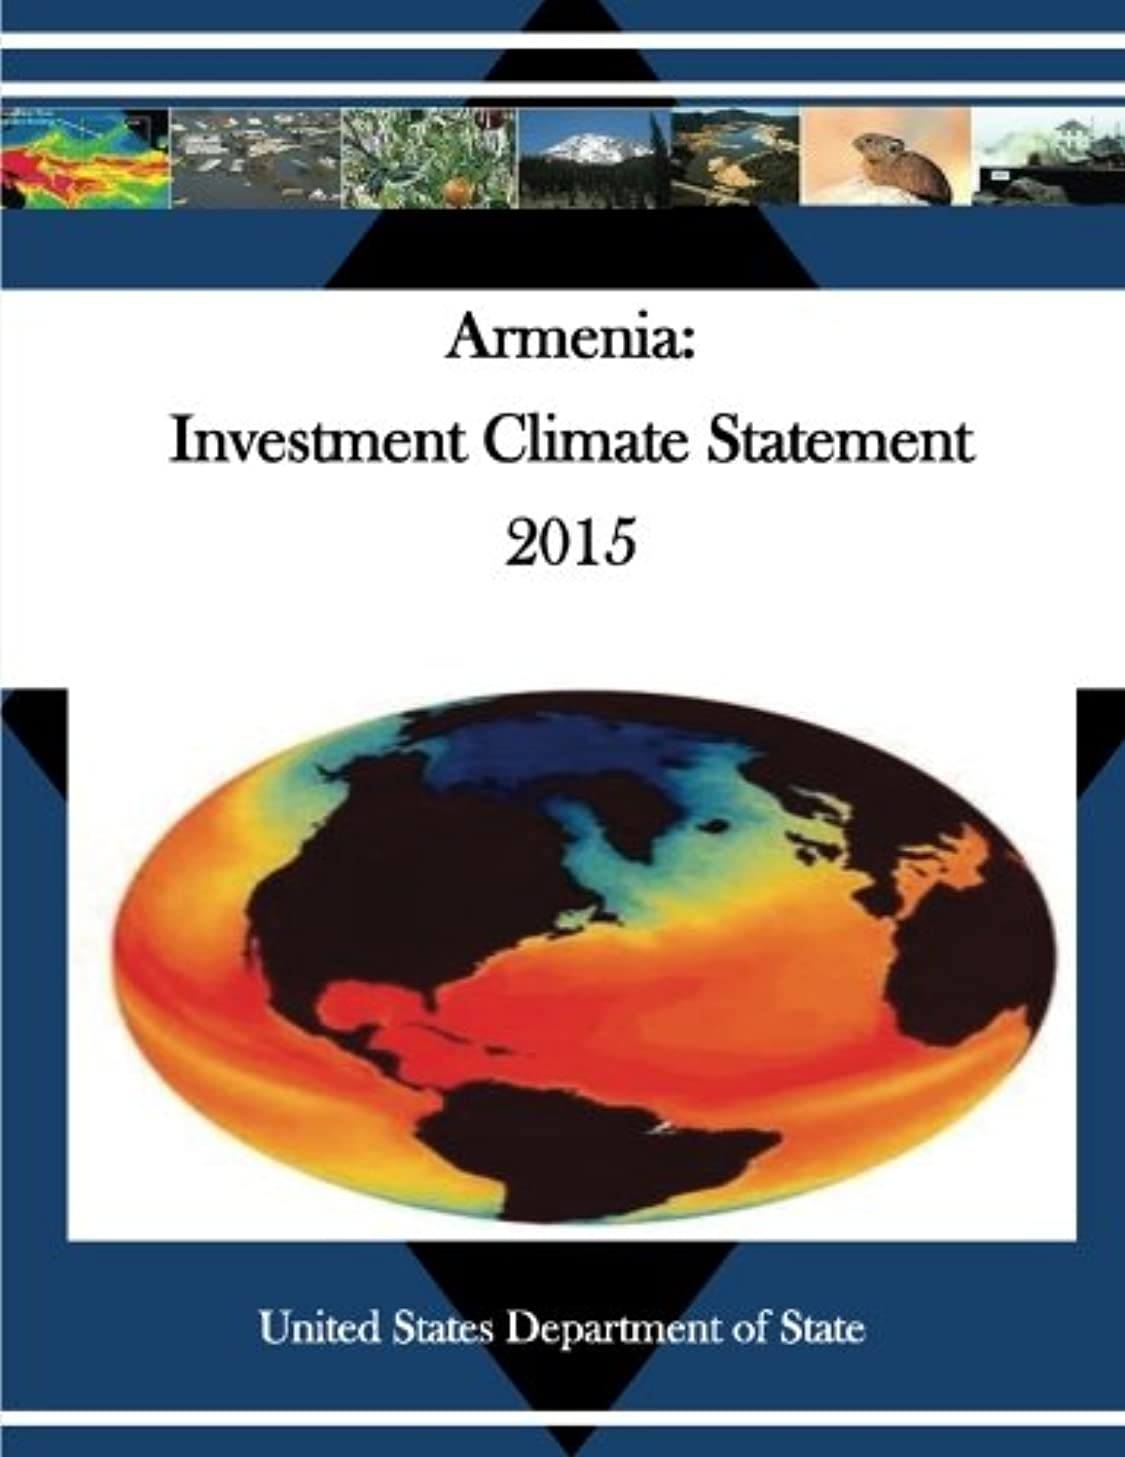 Armenia: Investment Climate Statement 2015